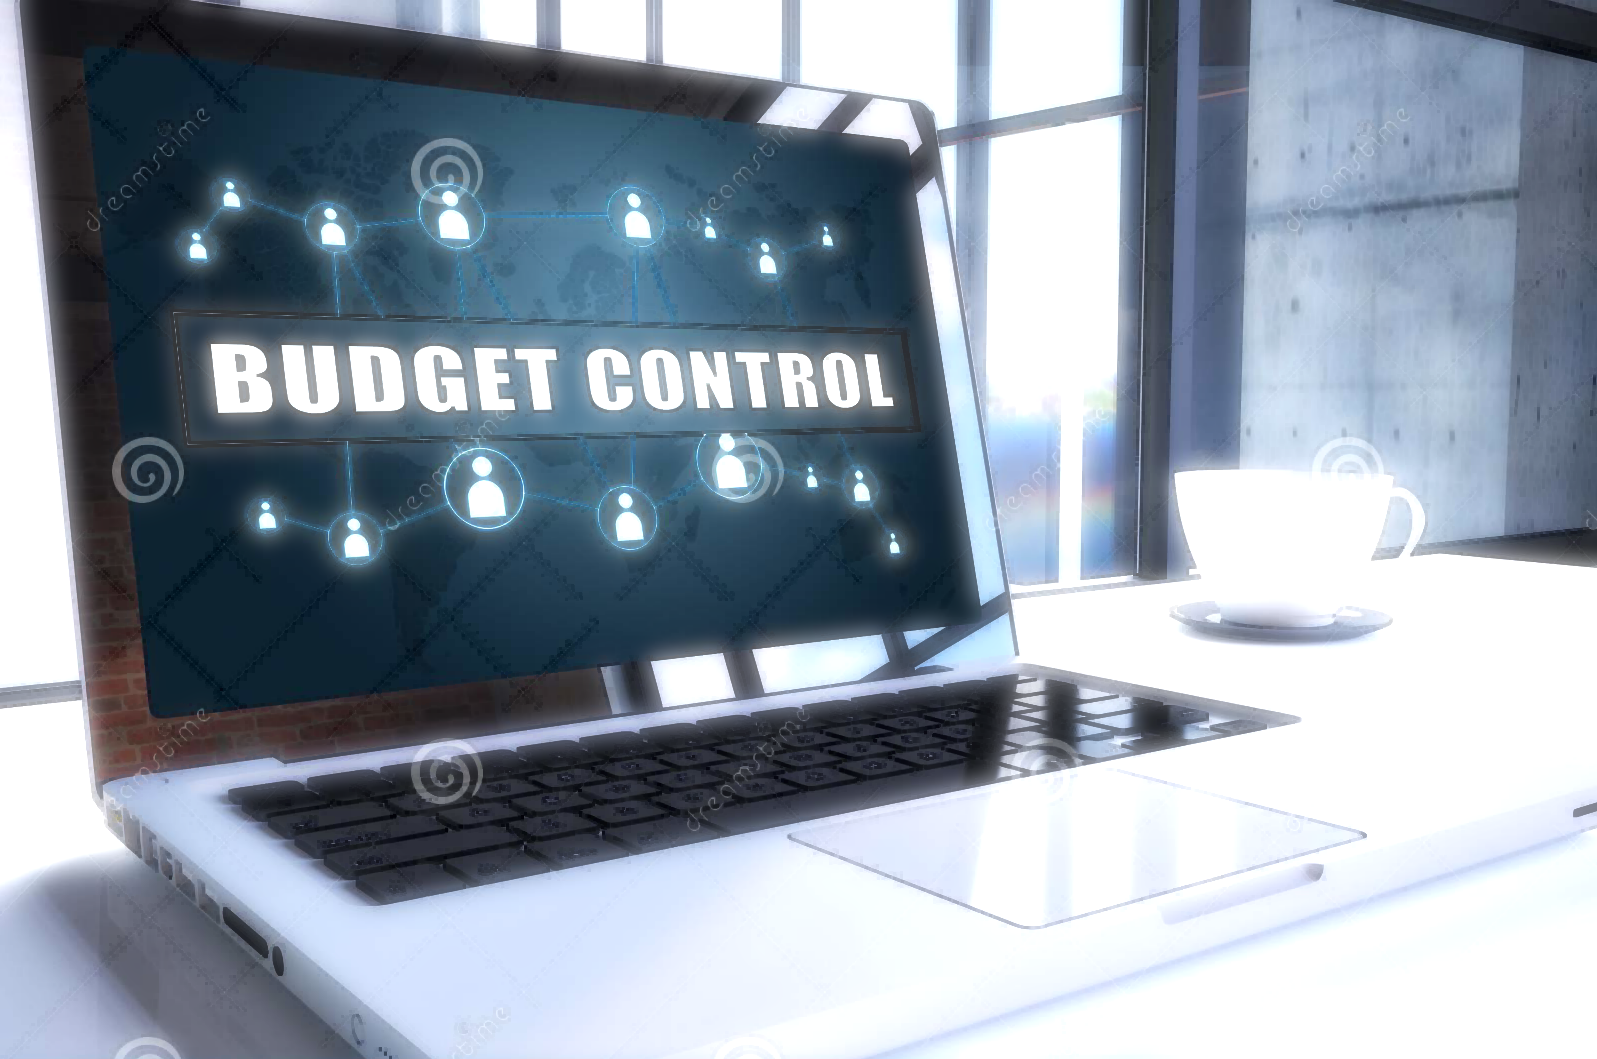 Course Image Budgeting & Cost Control